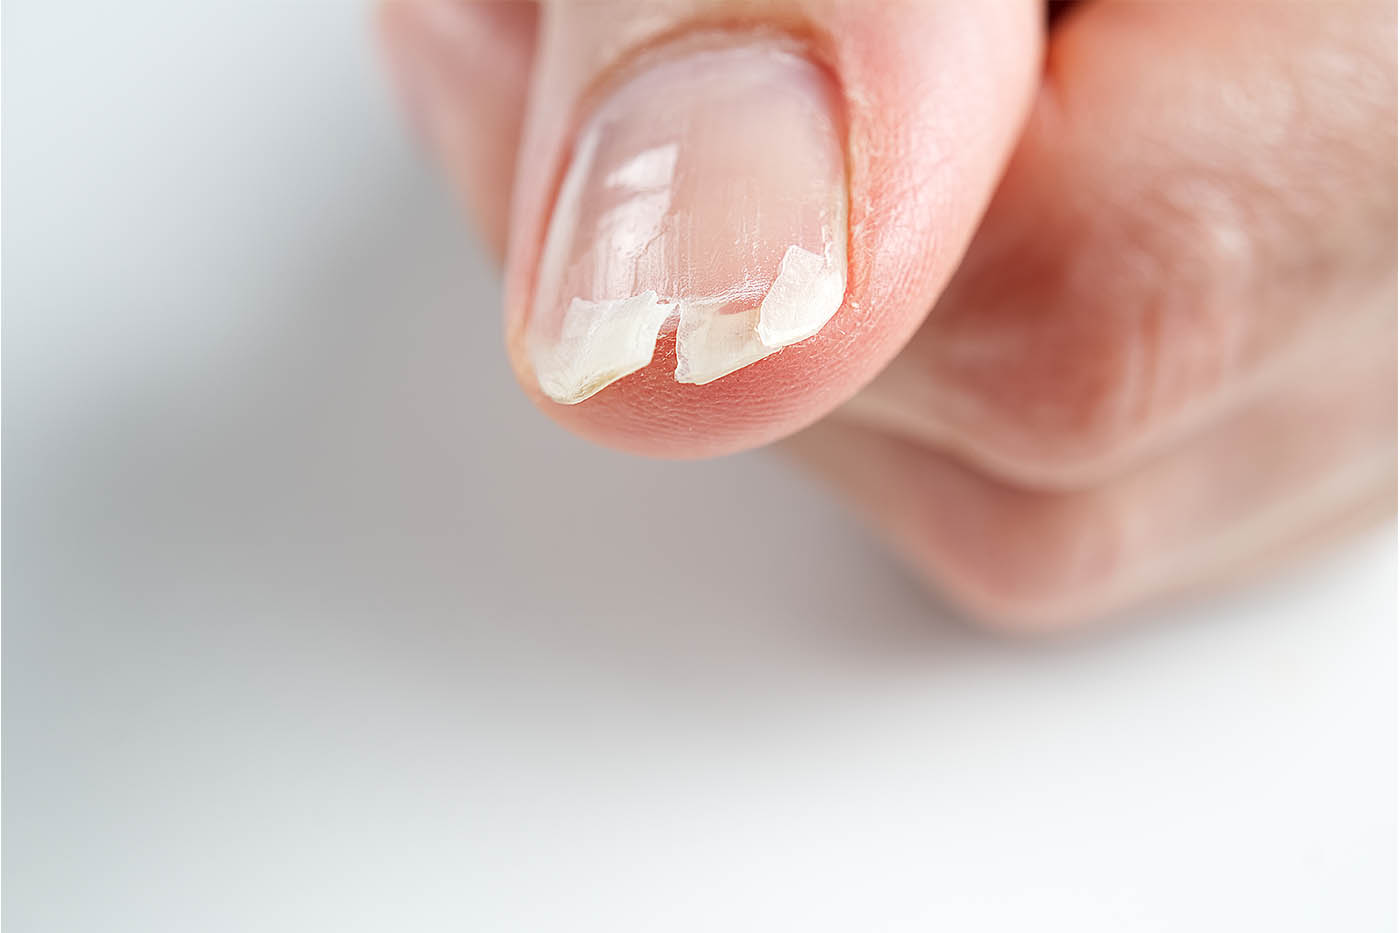 How to Fix Broken, Cracked or Flat Nails